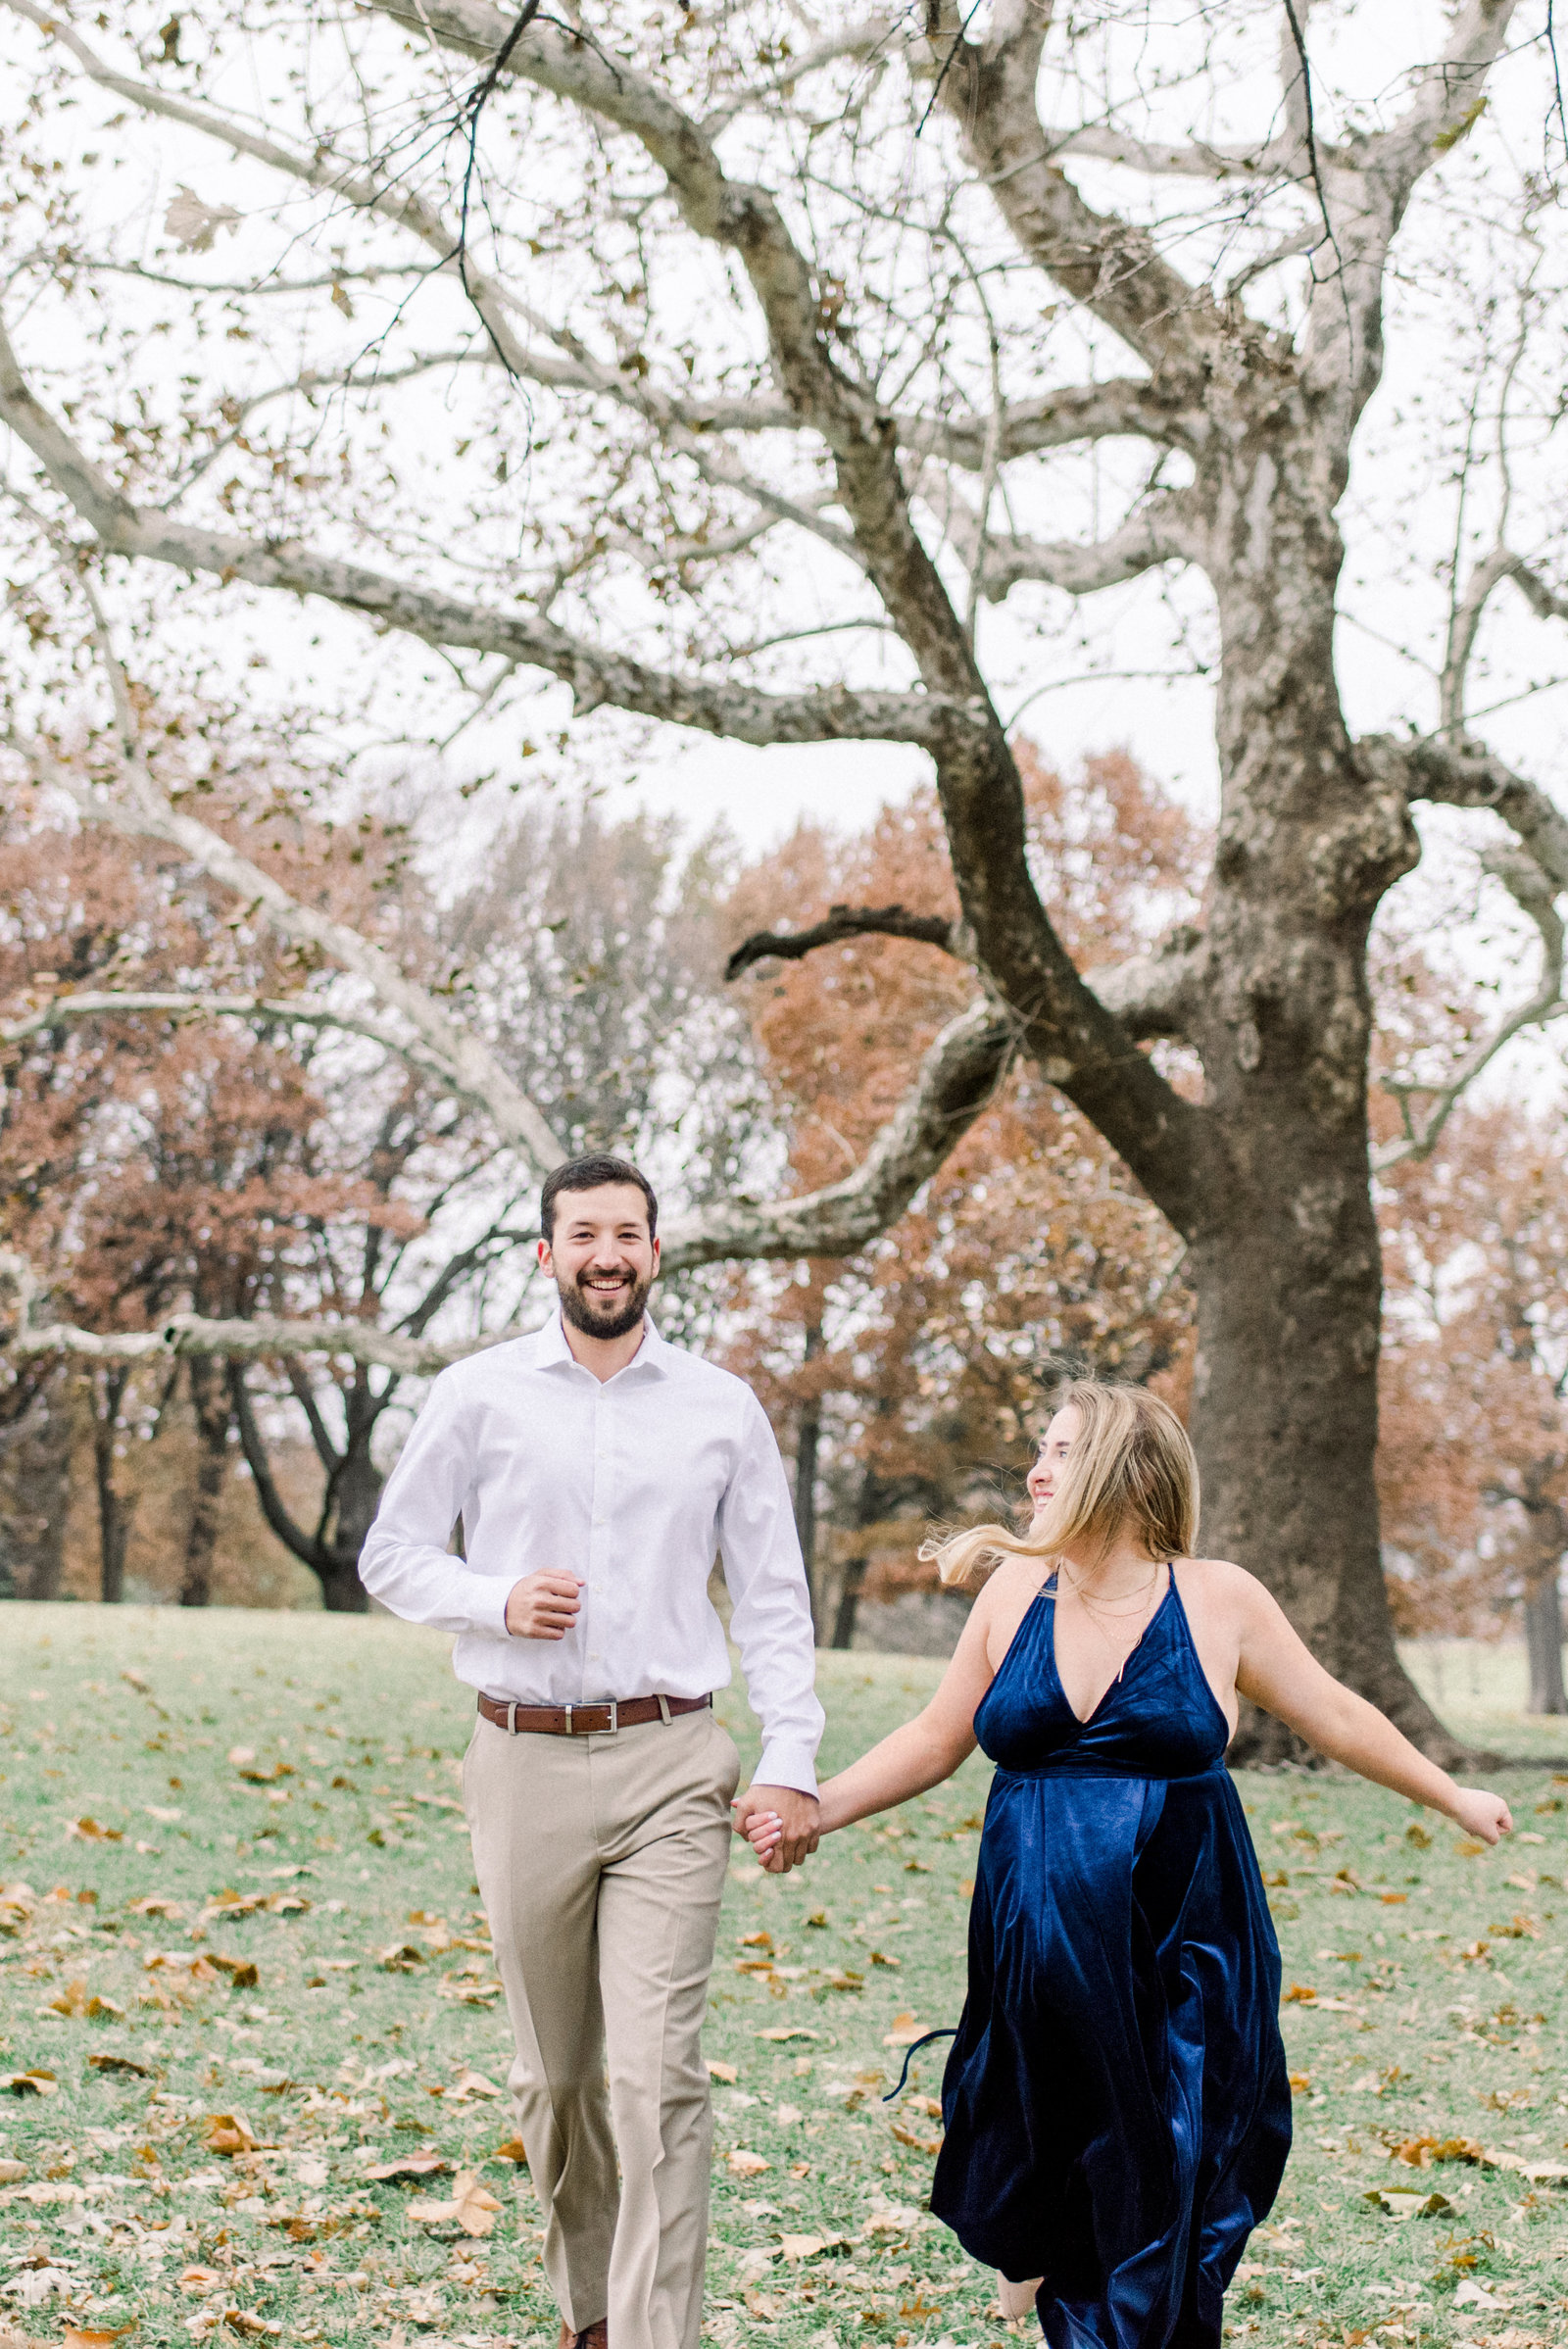 Winter_Engagement_Jacob_Loose_Pakr_Kansas_City_Elena+David-19